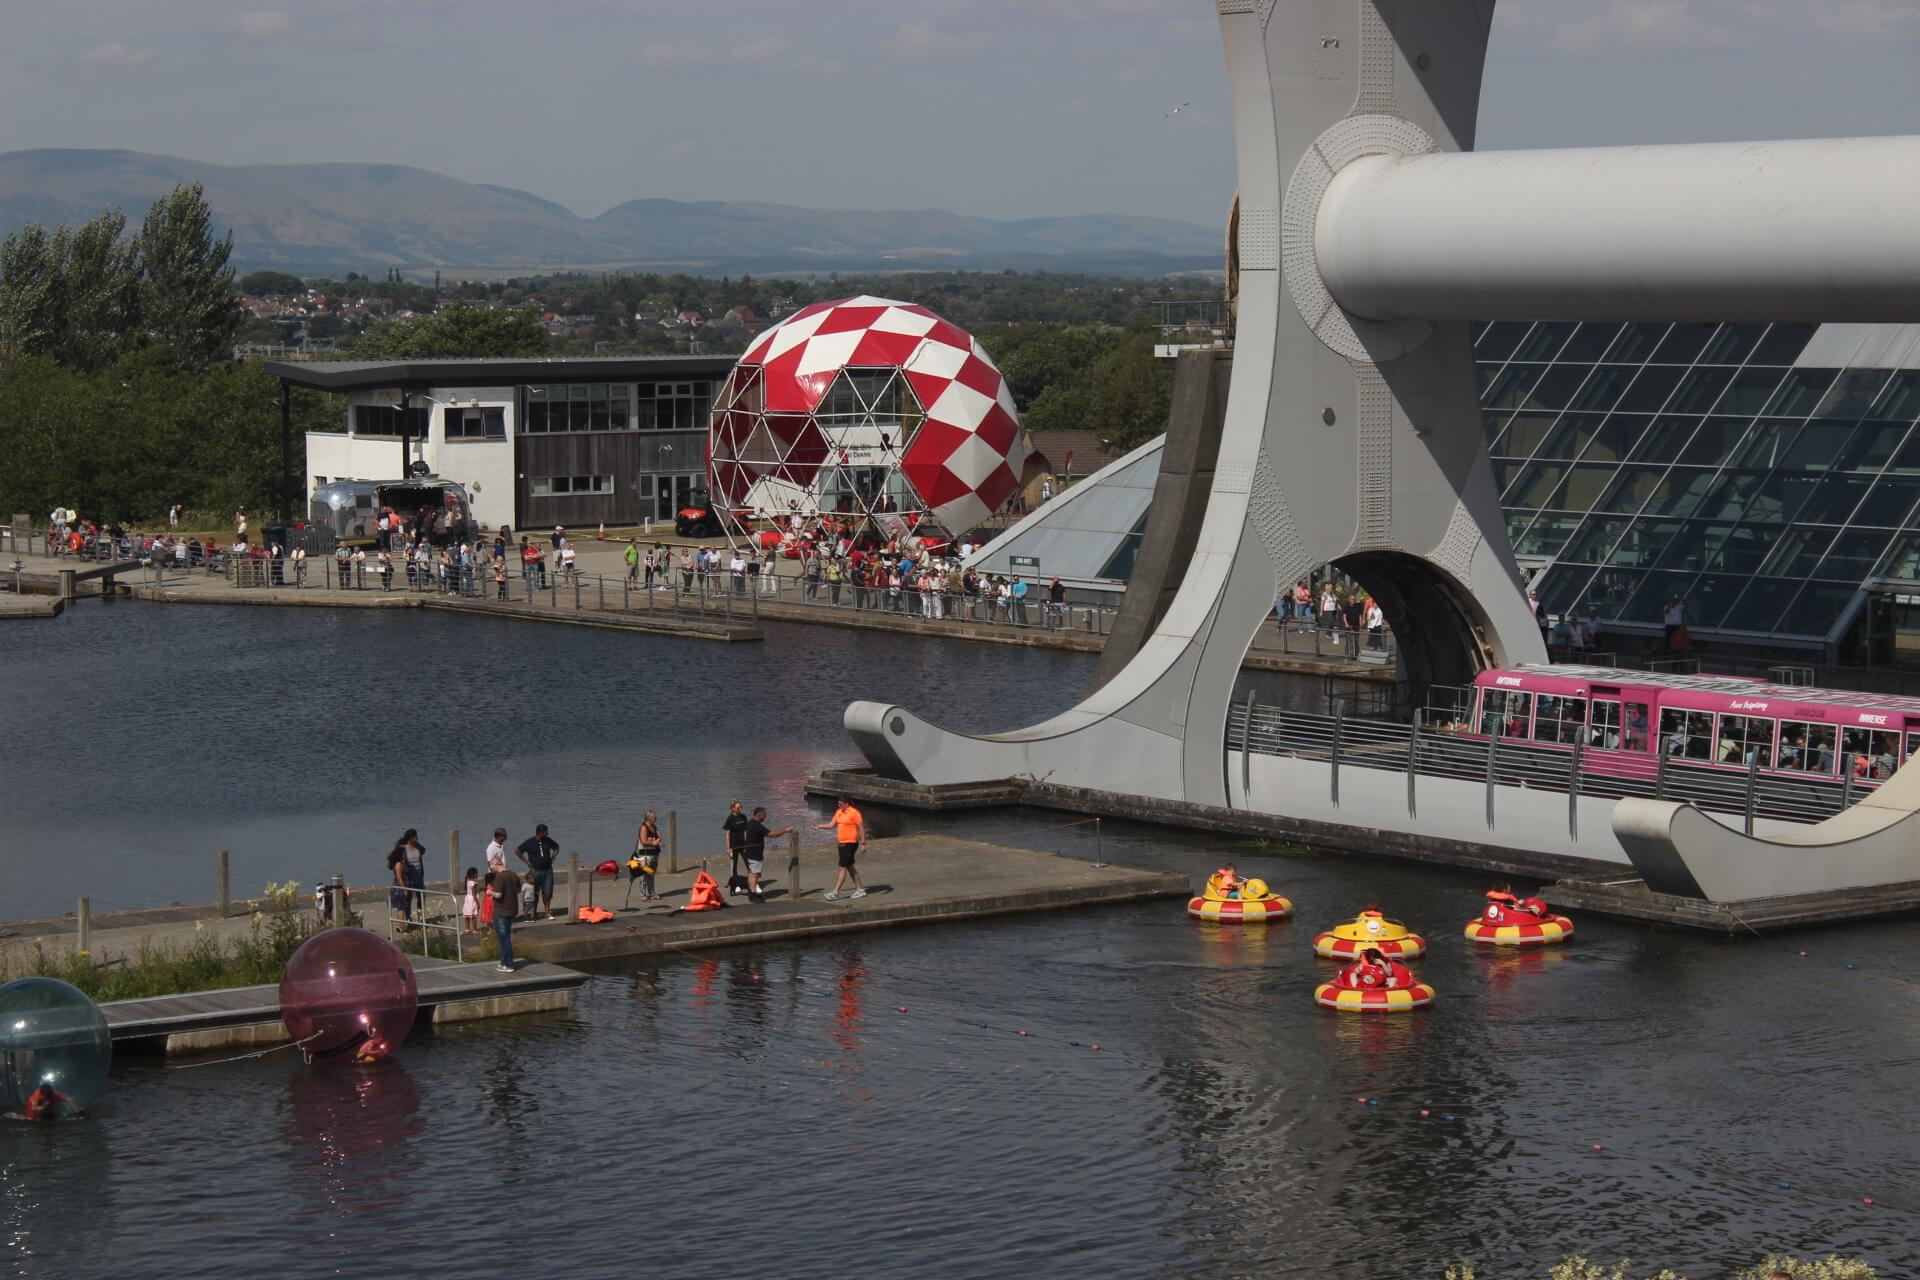 Falkirk Wheel   bubbleparc_Falkirk showcases the bungydome in its brightest red and white coat, performing in front of the awe inspiring and world famous Falkirk Wheel.